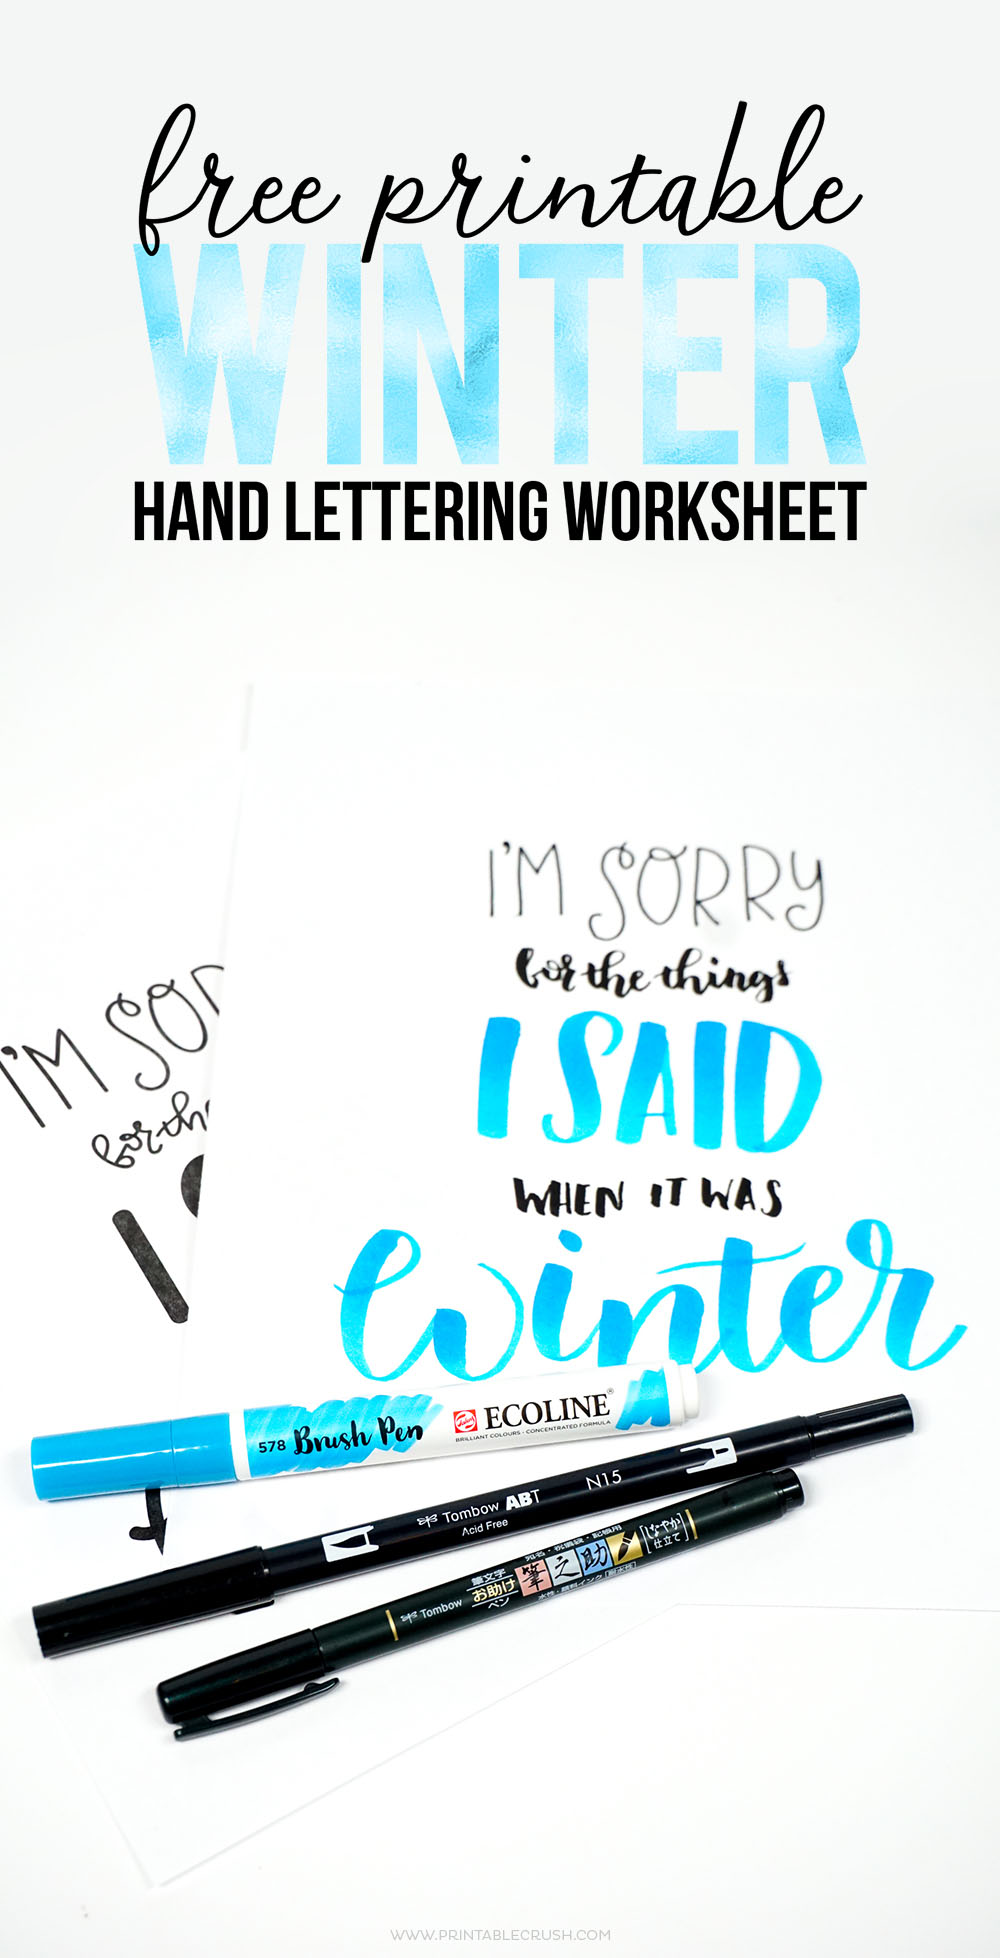 graphic about Brush Lettering Practice Sheets Printable named Amusing Winter season Lettering Educate Sheet - Printable Crush